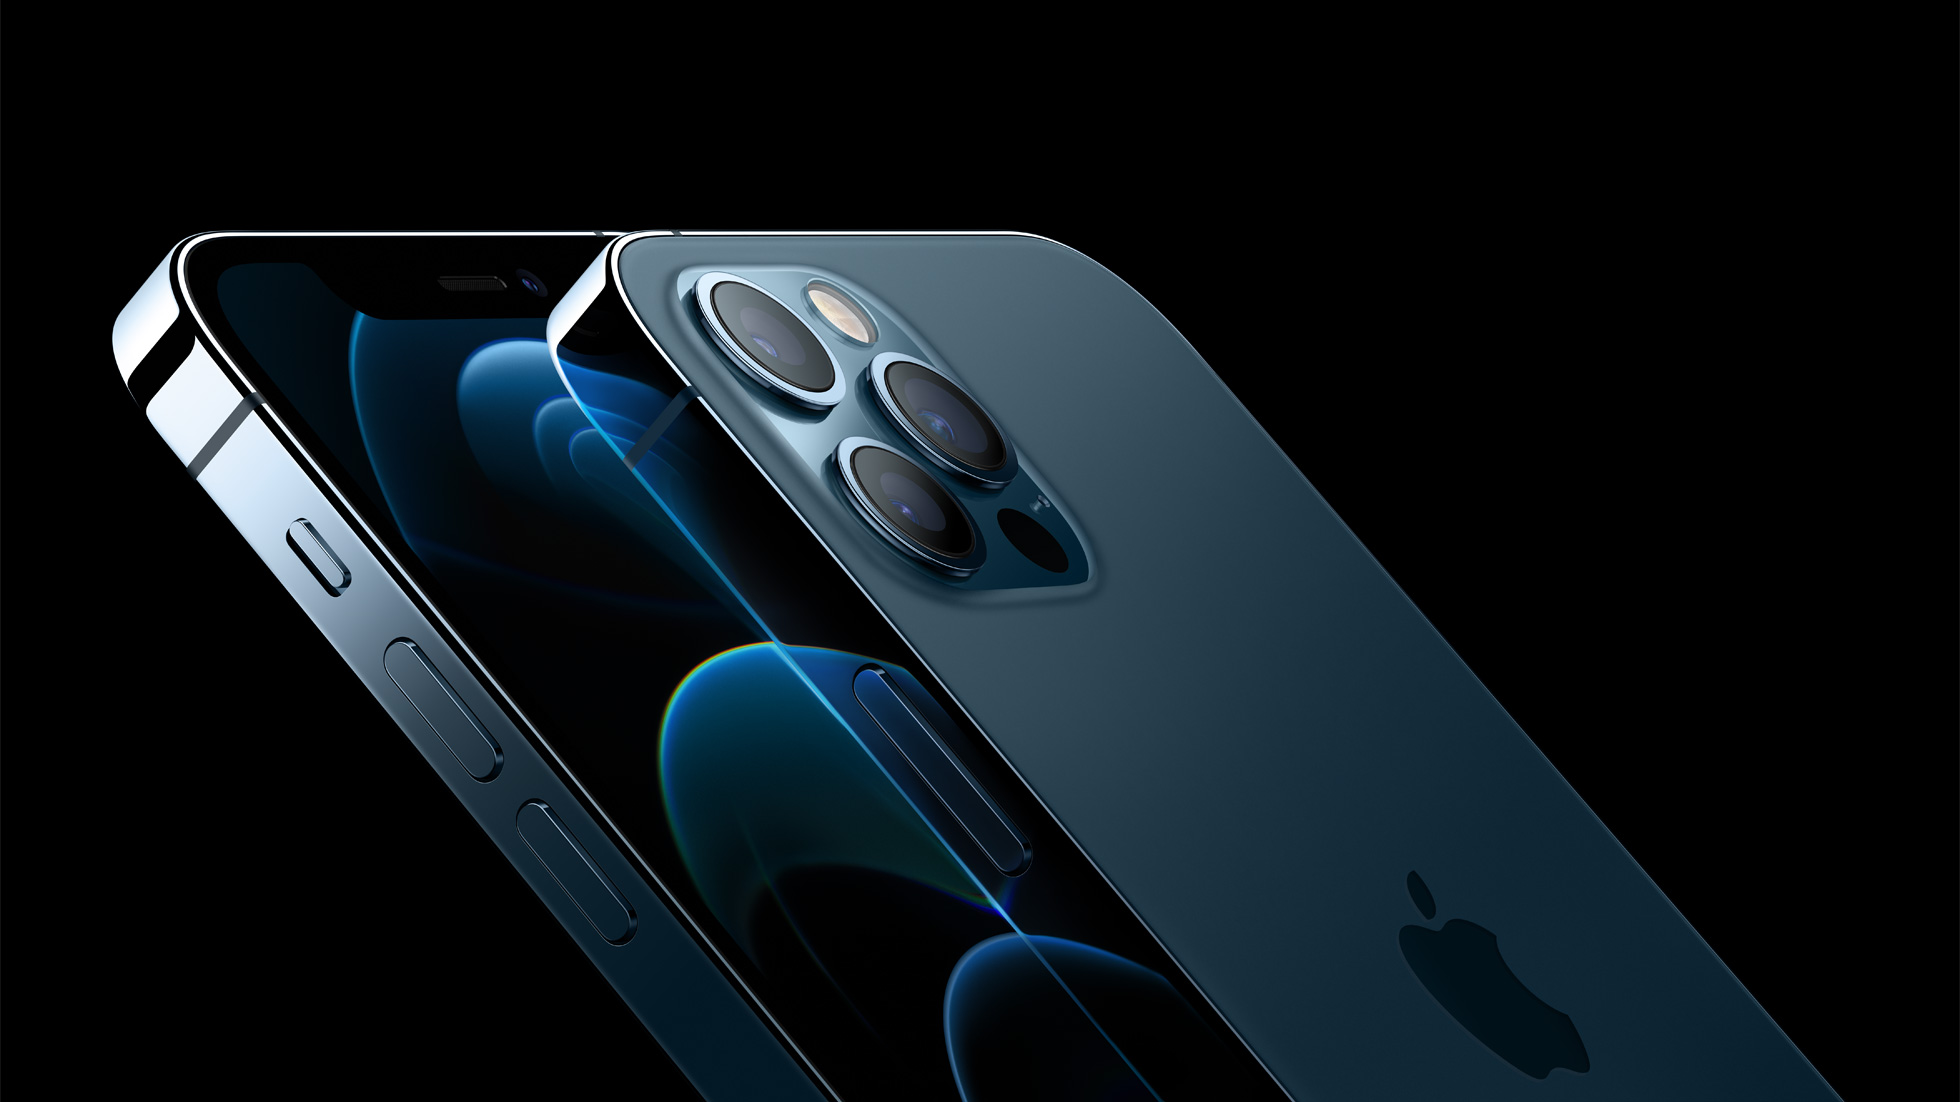 Apple's new iPhone 12 range are all 5G-capable, super fast and come loaded with terrific cameras — their best yet